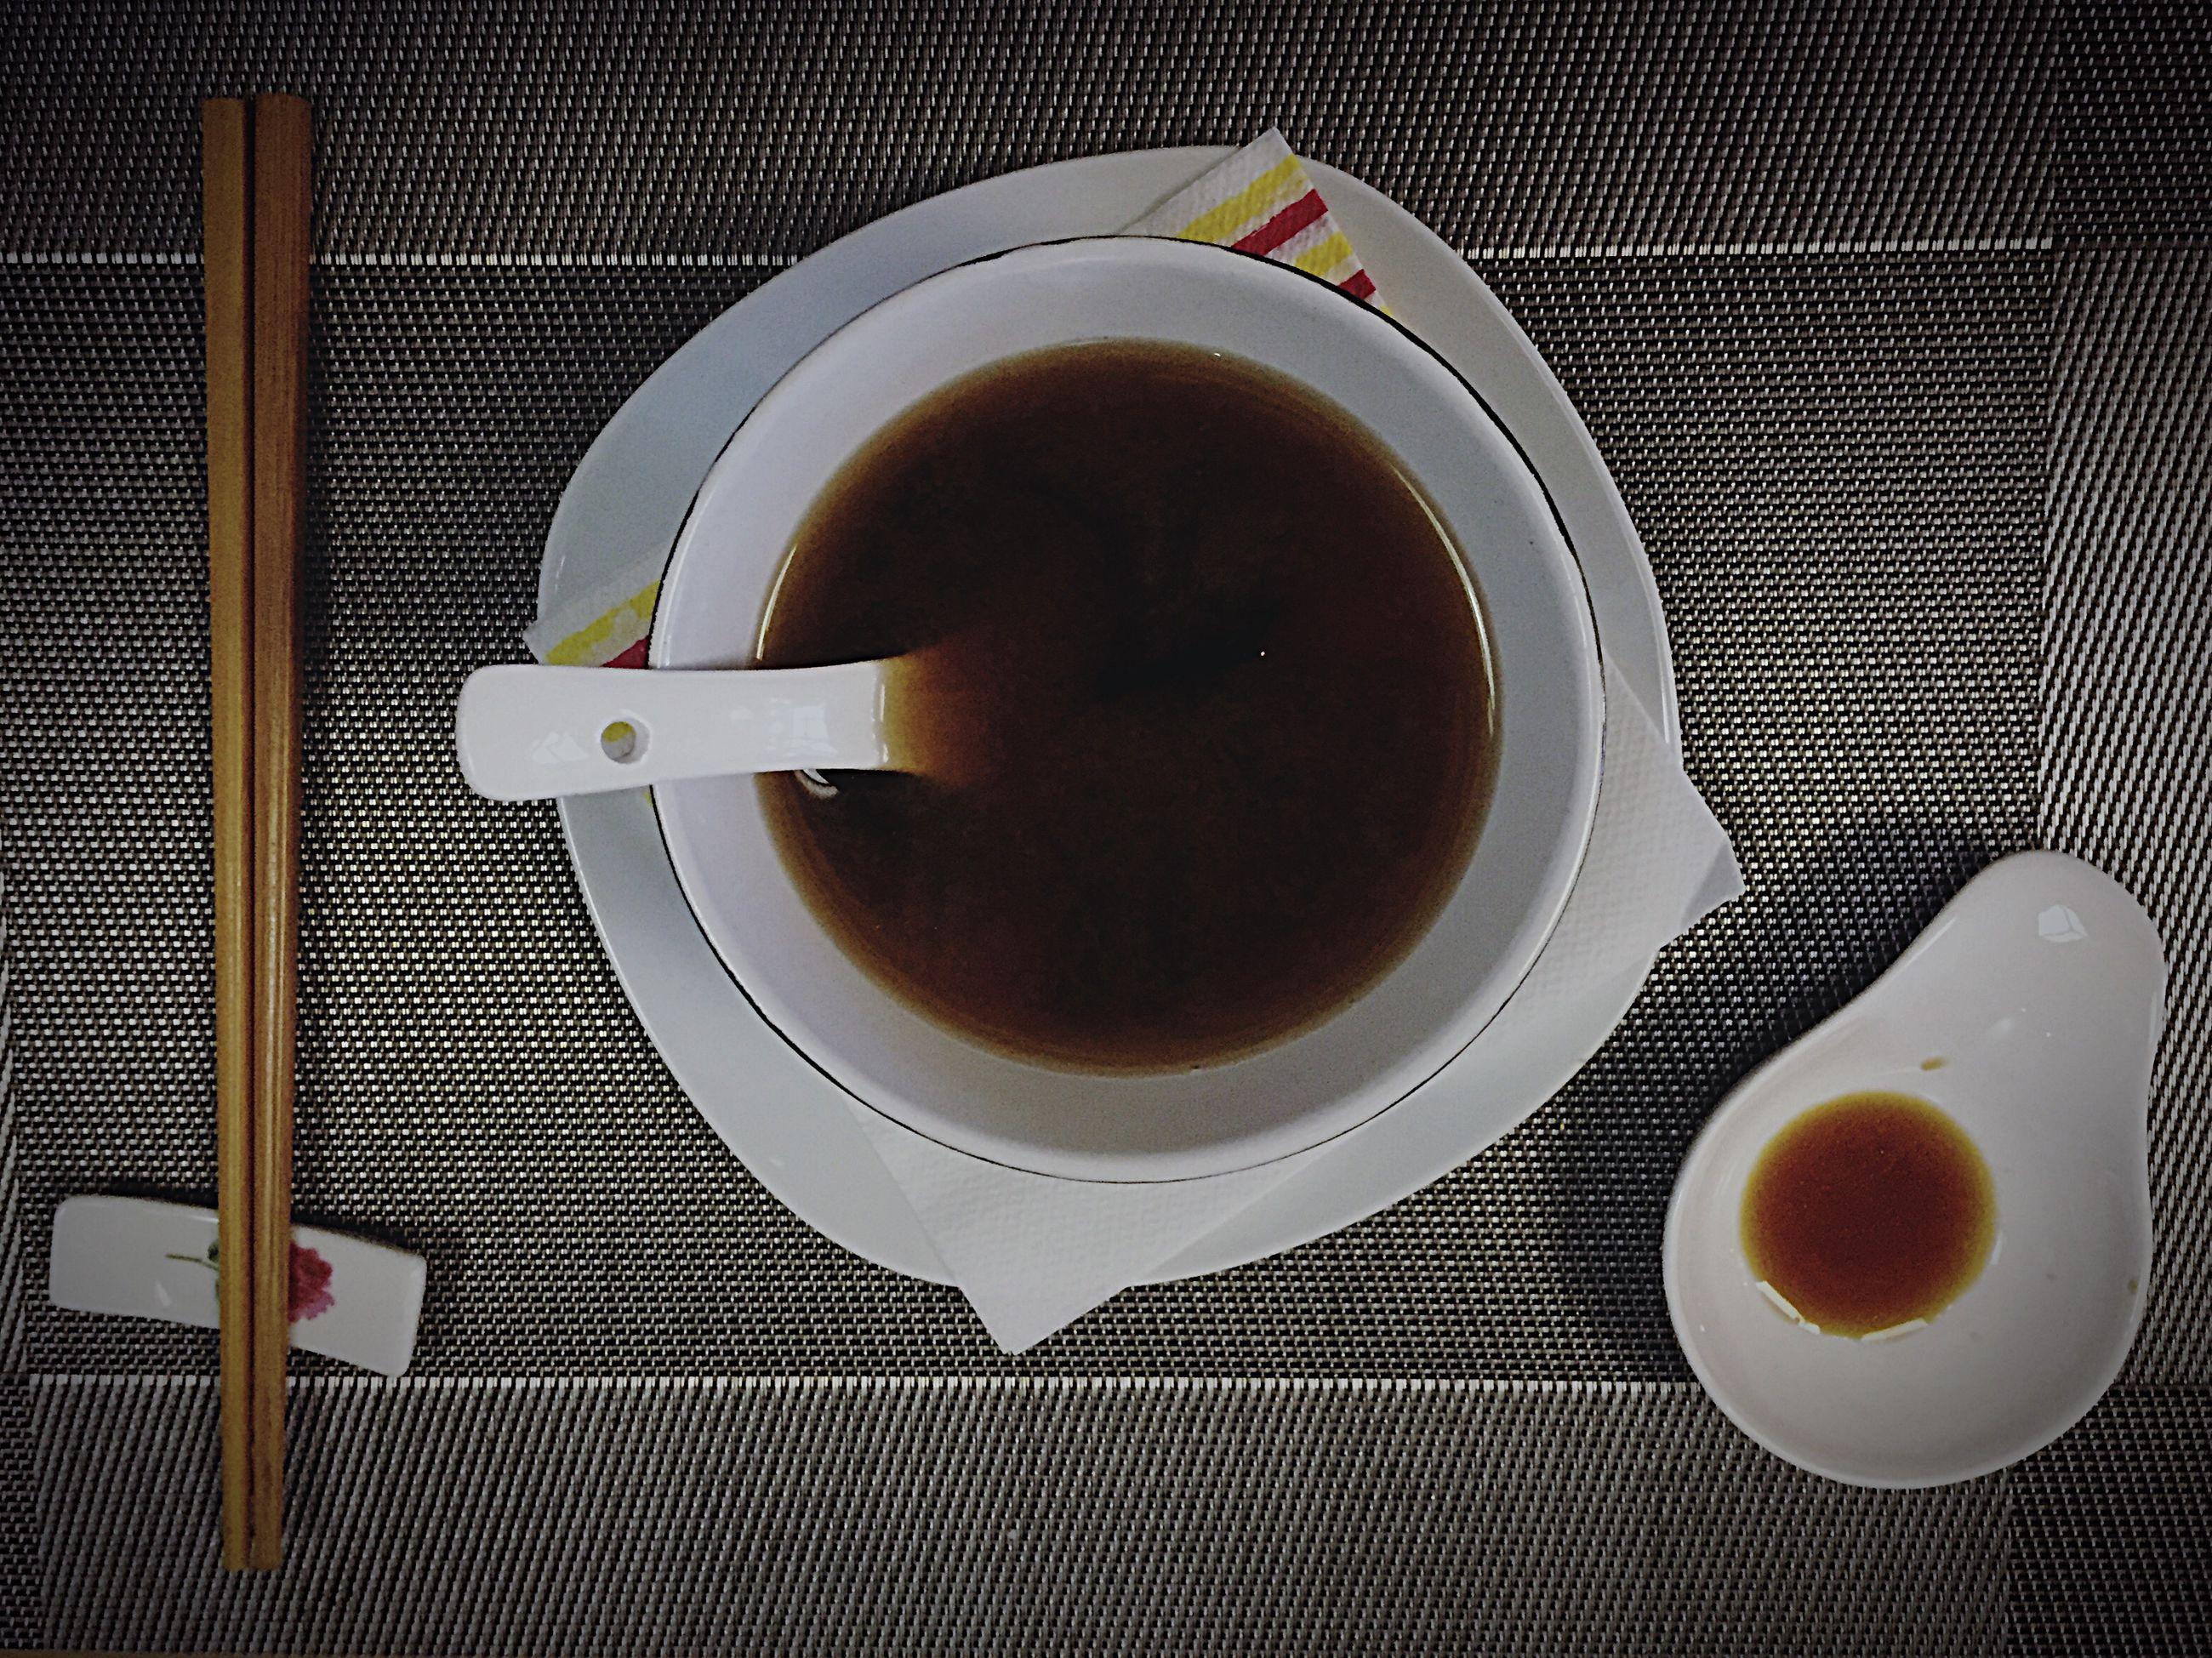 food and drink, coffee cup, drink, freshness, refreshment, coffee - drink, indoors, saucer, coffee, table, still life, spoon, food, directly above, cup, high angle view, plate, breakfast, healthy eating, close-up